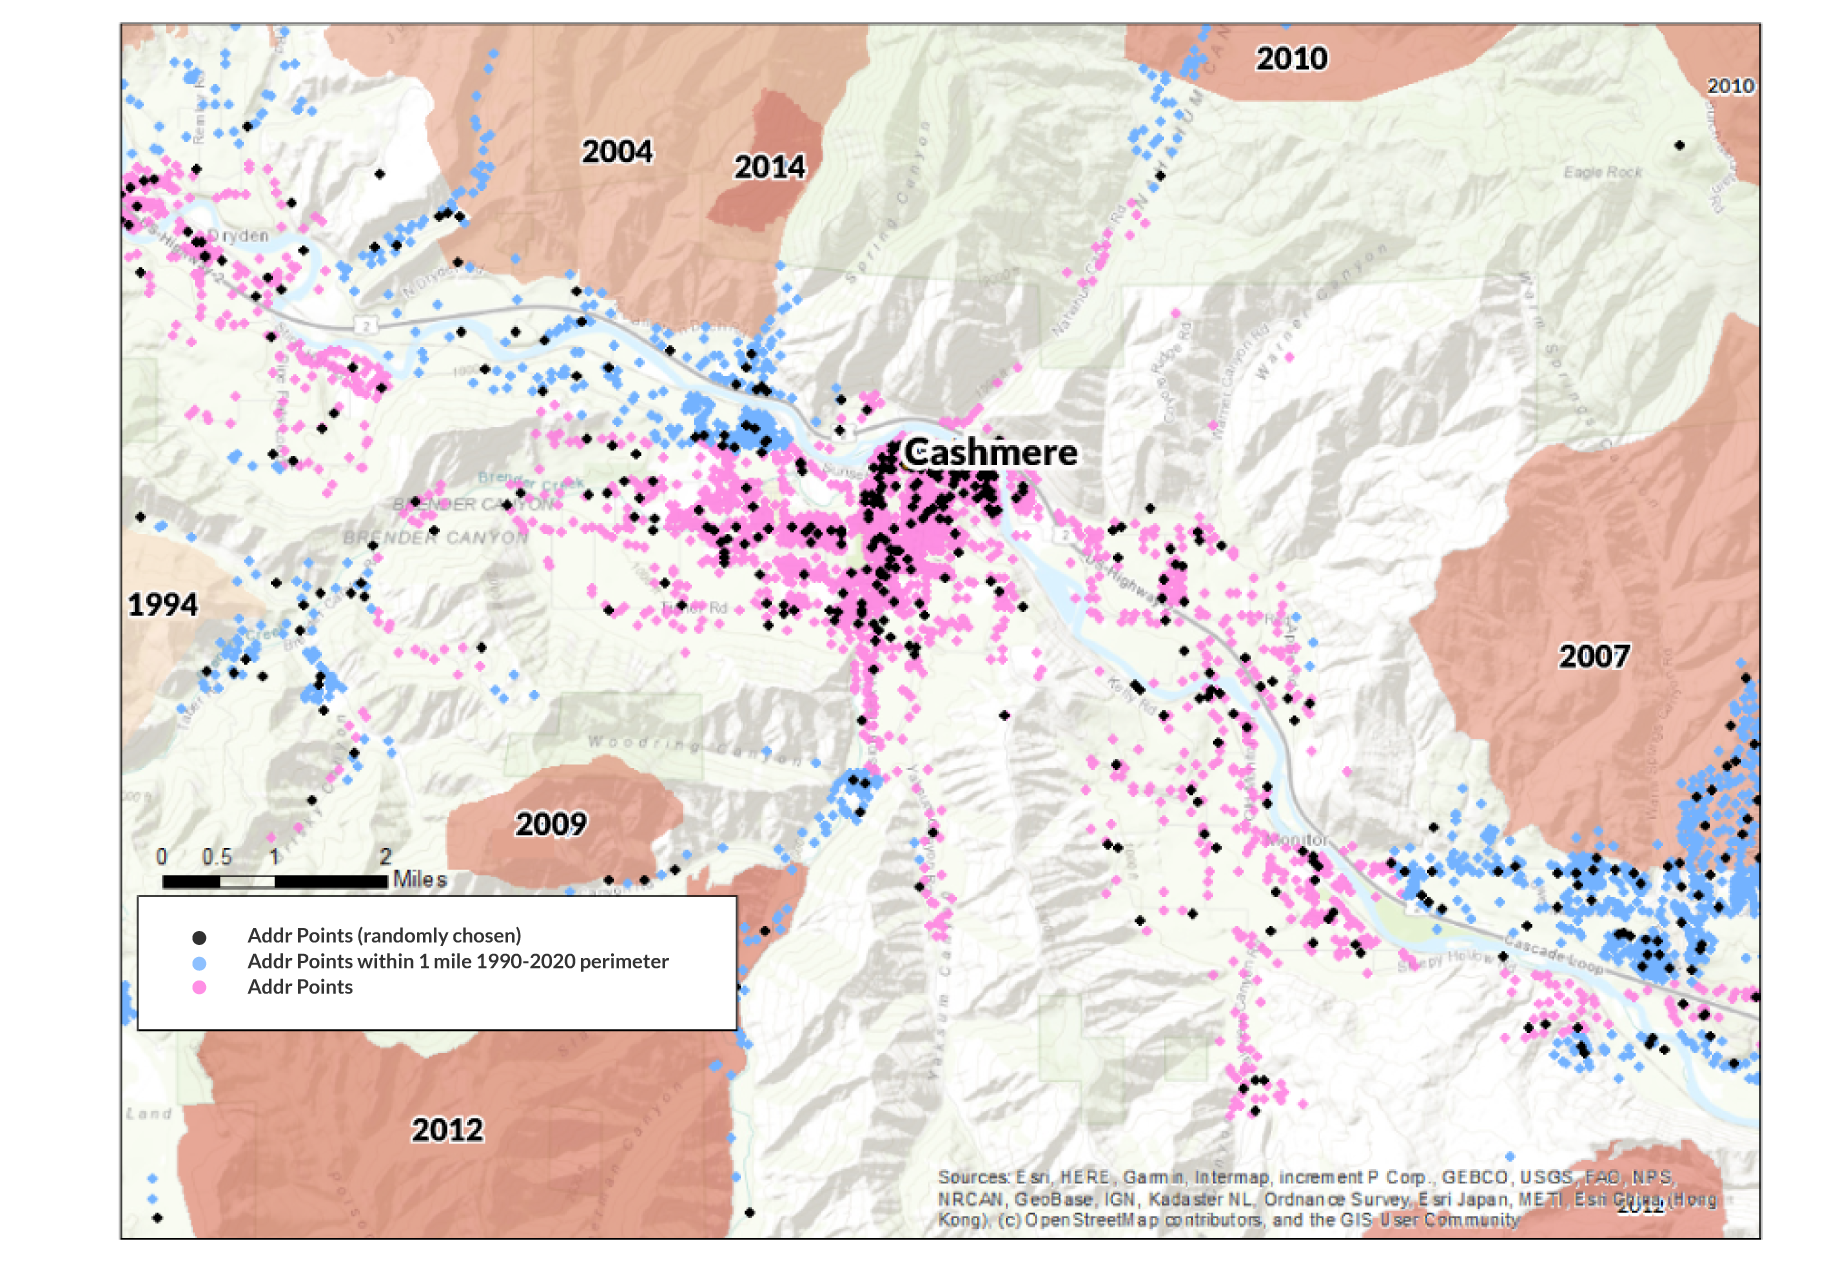 A map of Cashmere, WA, historic wildfire perimeters and 10% of address points randomly selected